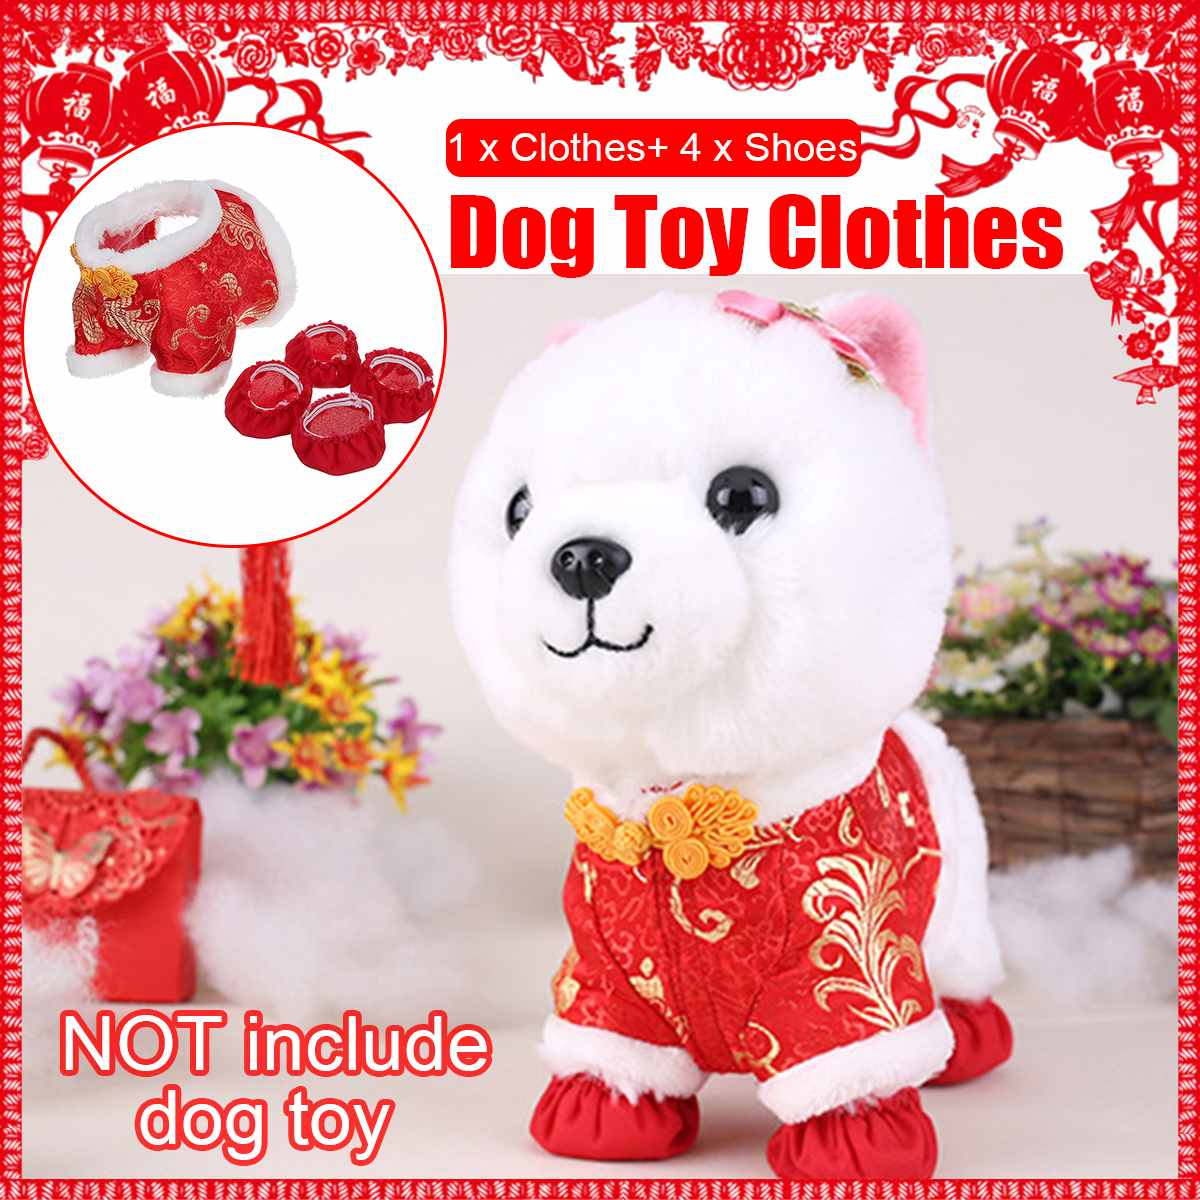 5PCS Pet Dog New Year Clothes Party Costume Chinese Tang Dynasty Dress Festival Costume With Cute Red Shoes For Puppy/Robot Dog